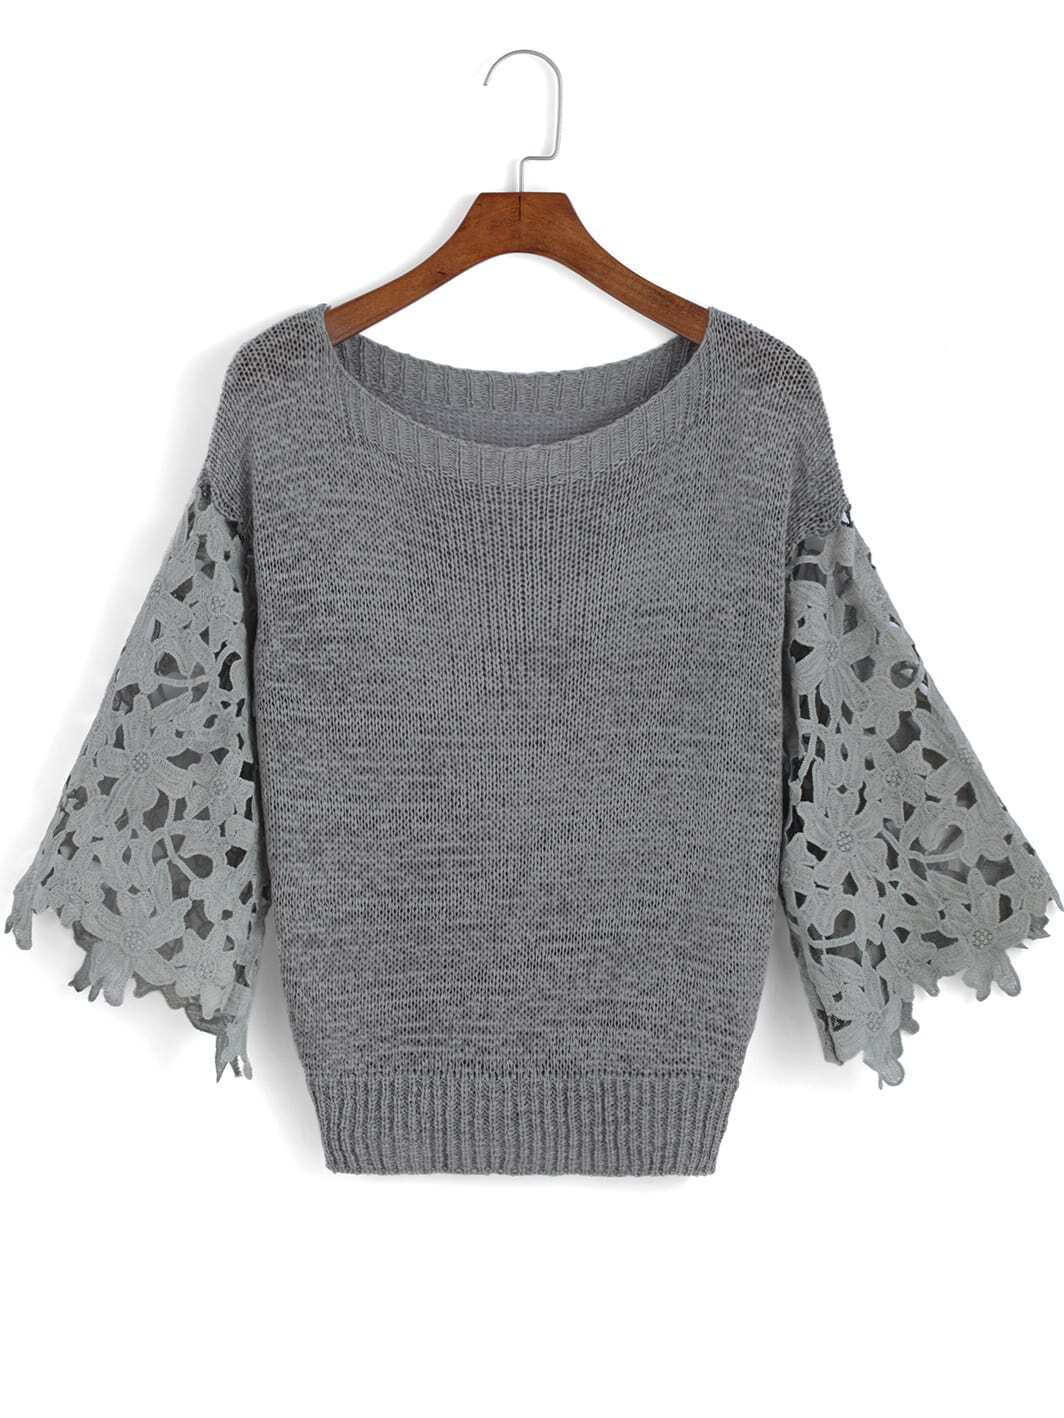 Grey Floral Crochet Round Neck Knit Sweater -SheIn(Sheinside)